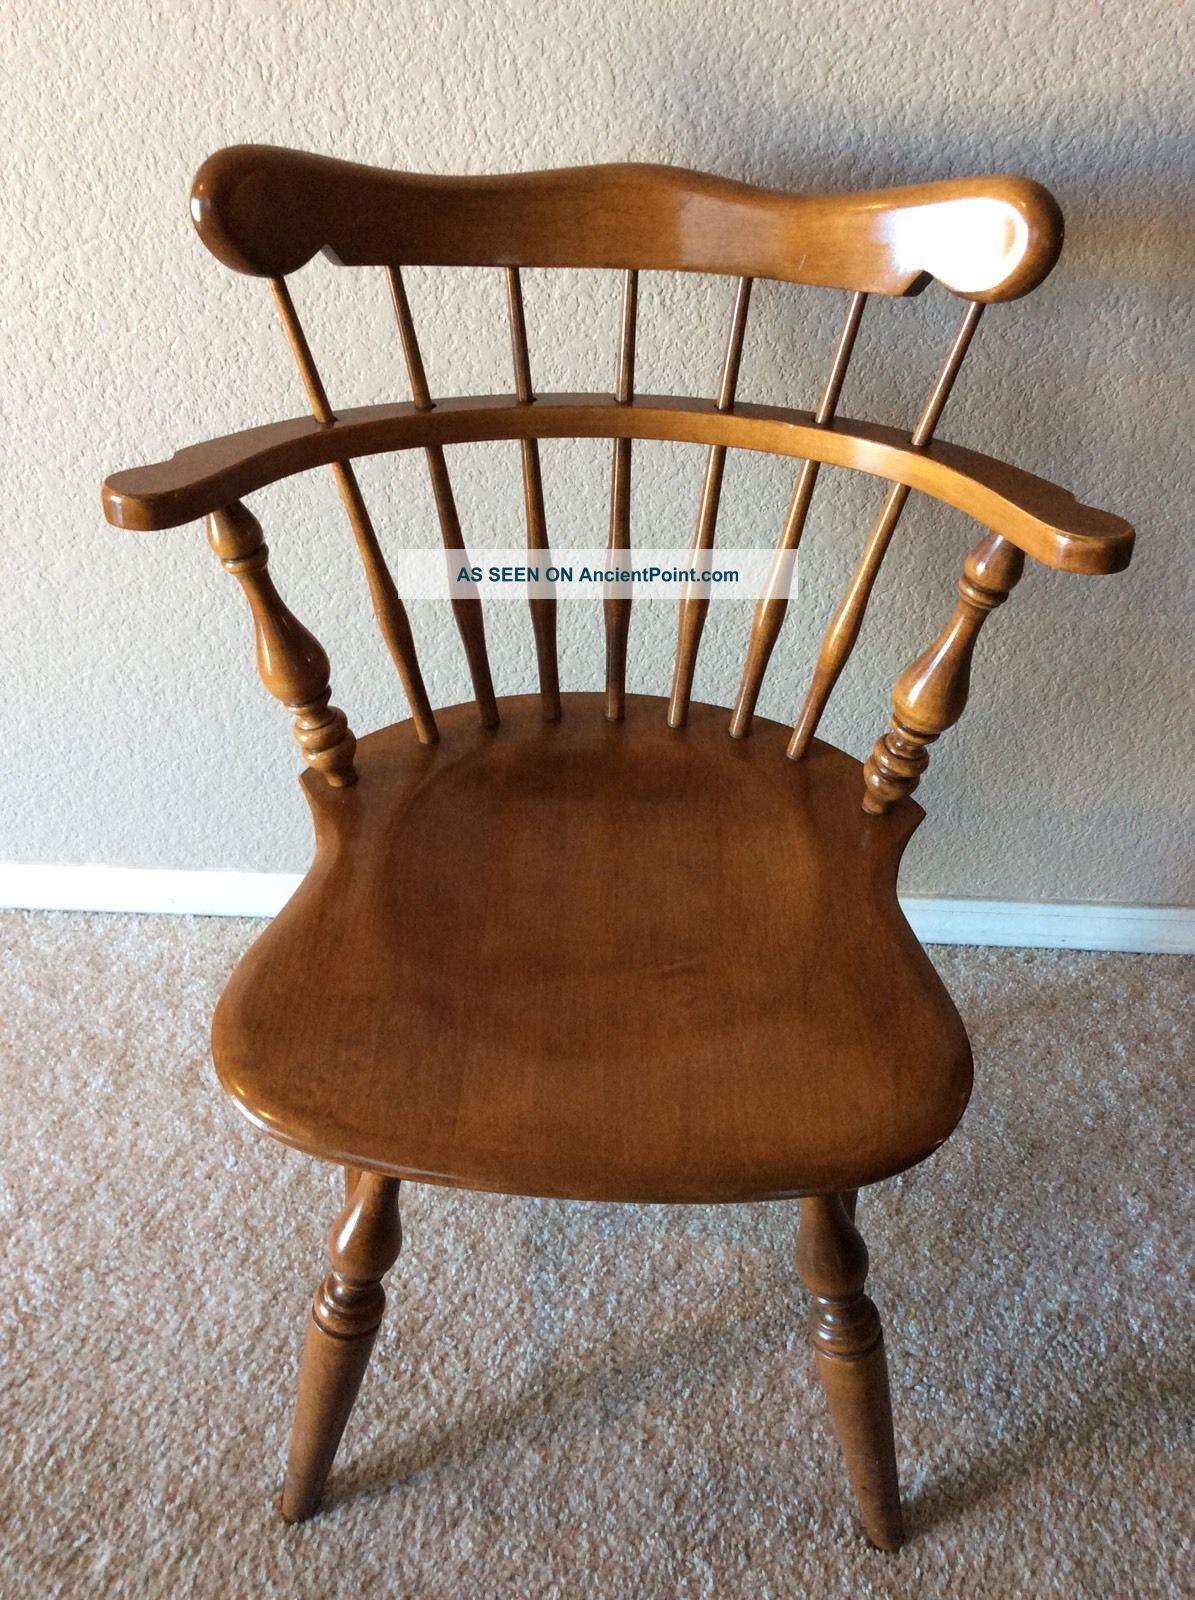 Vintage Ethan Allen Swivel Maple Nutmeg Comb Back Desk Chair Post-1950 photo